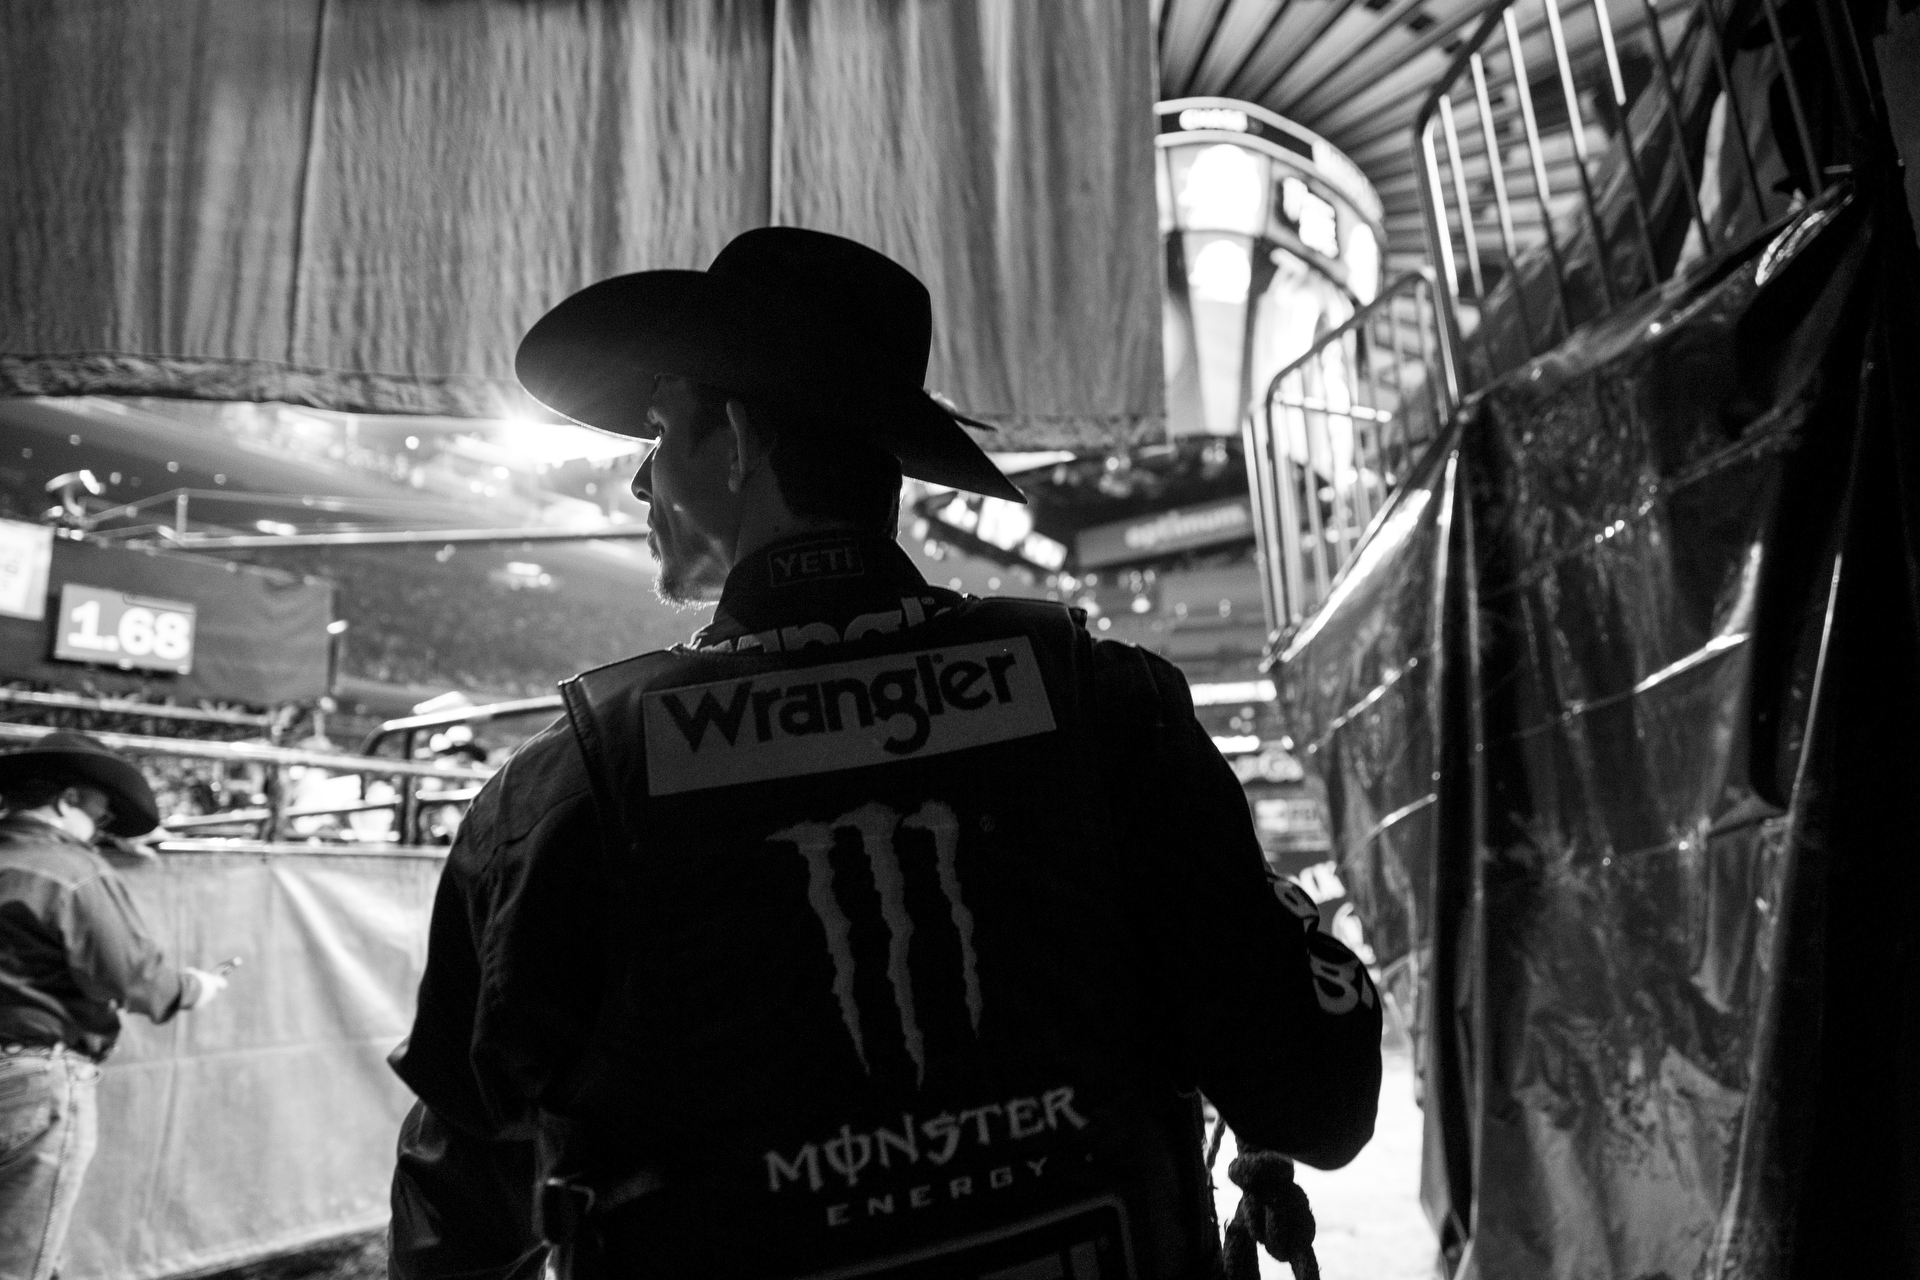 PBR's 10th Anniversary Monster Energy Buck Off at the Garden at Madison Square Garden on Friday, January 15, 2016 in New York City. (Photo by Taylor Baucom/The Players' Tribune)